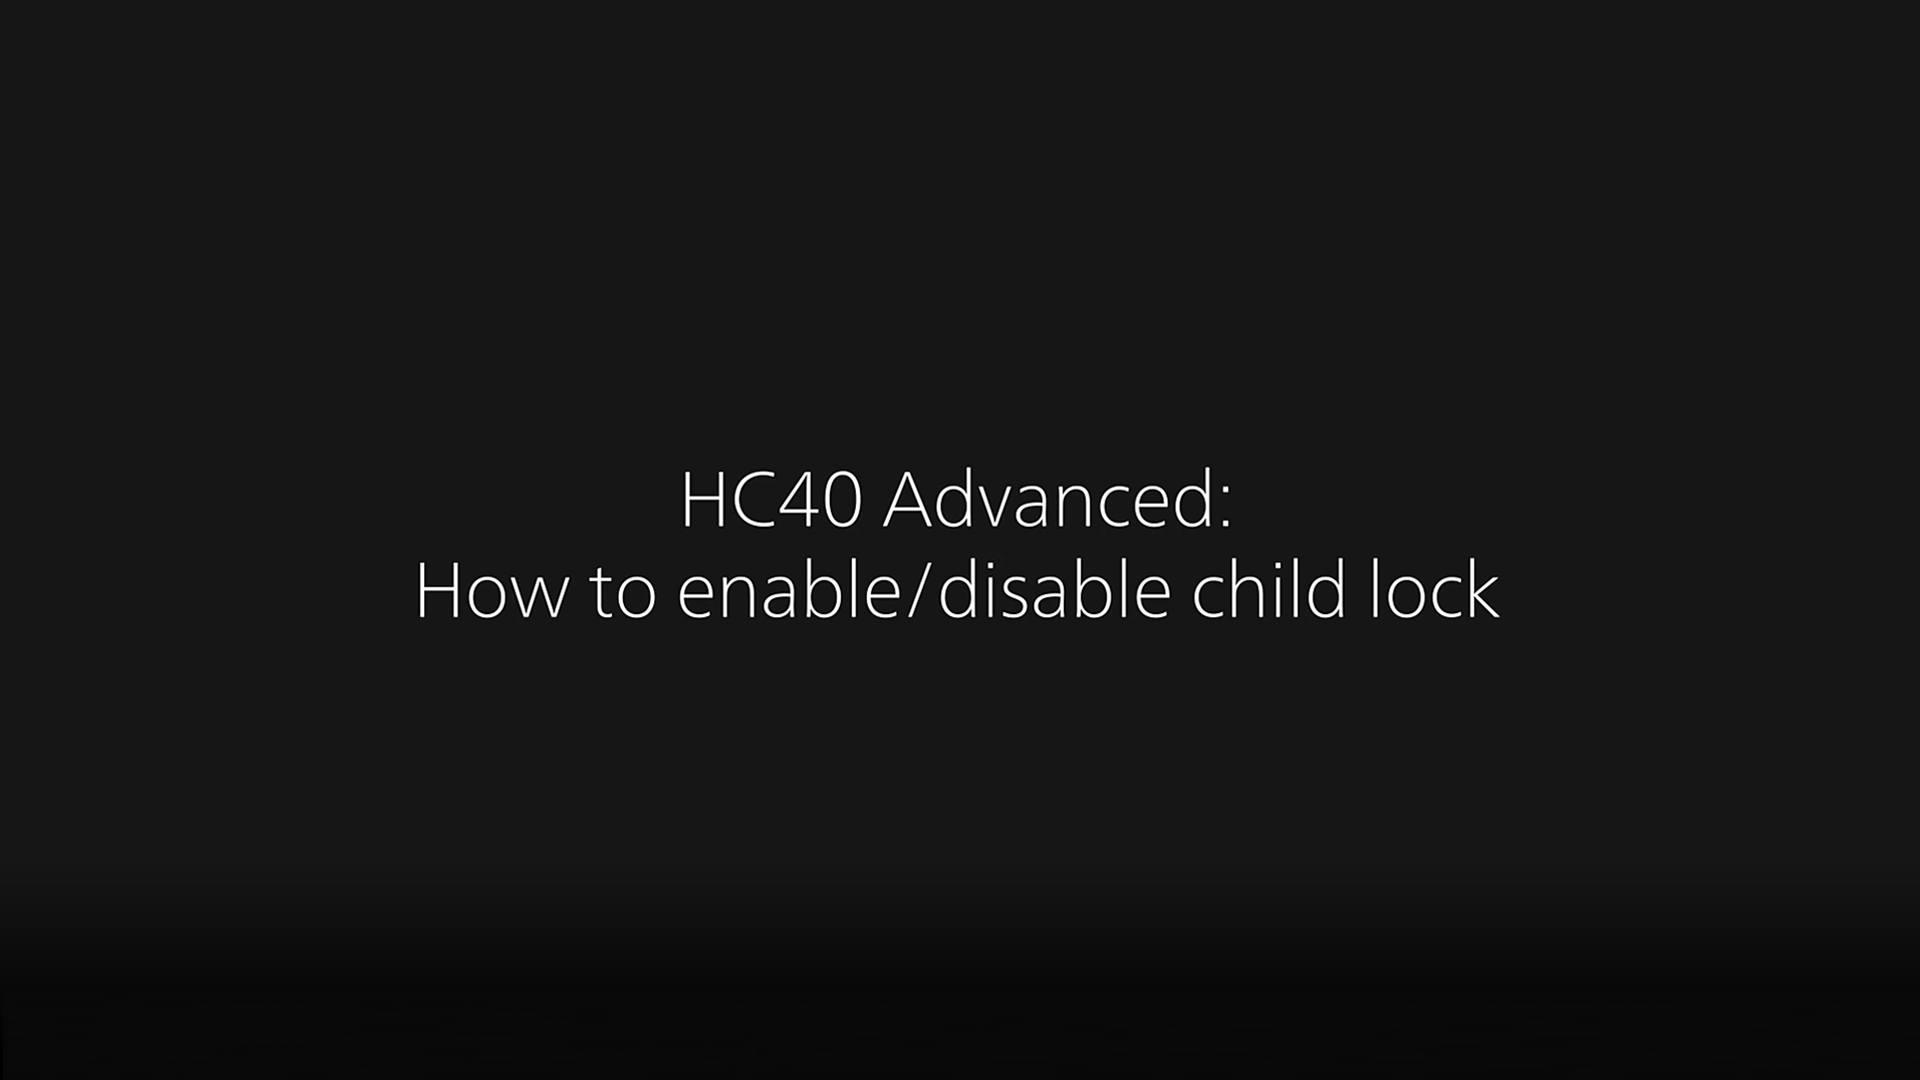 HC40 how to enable disable child lock